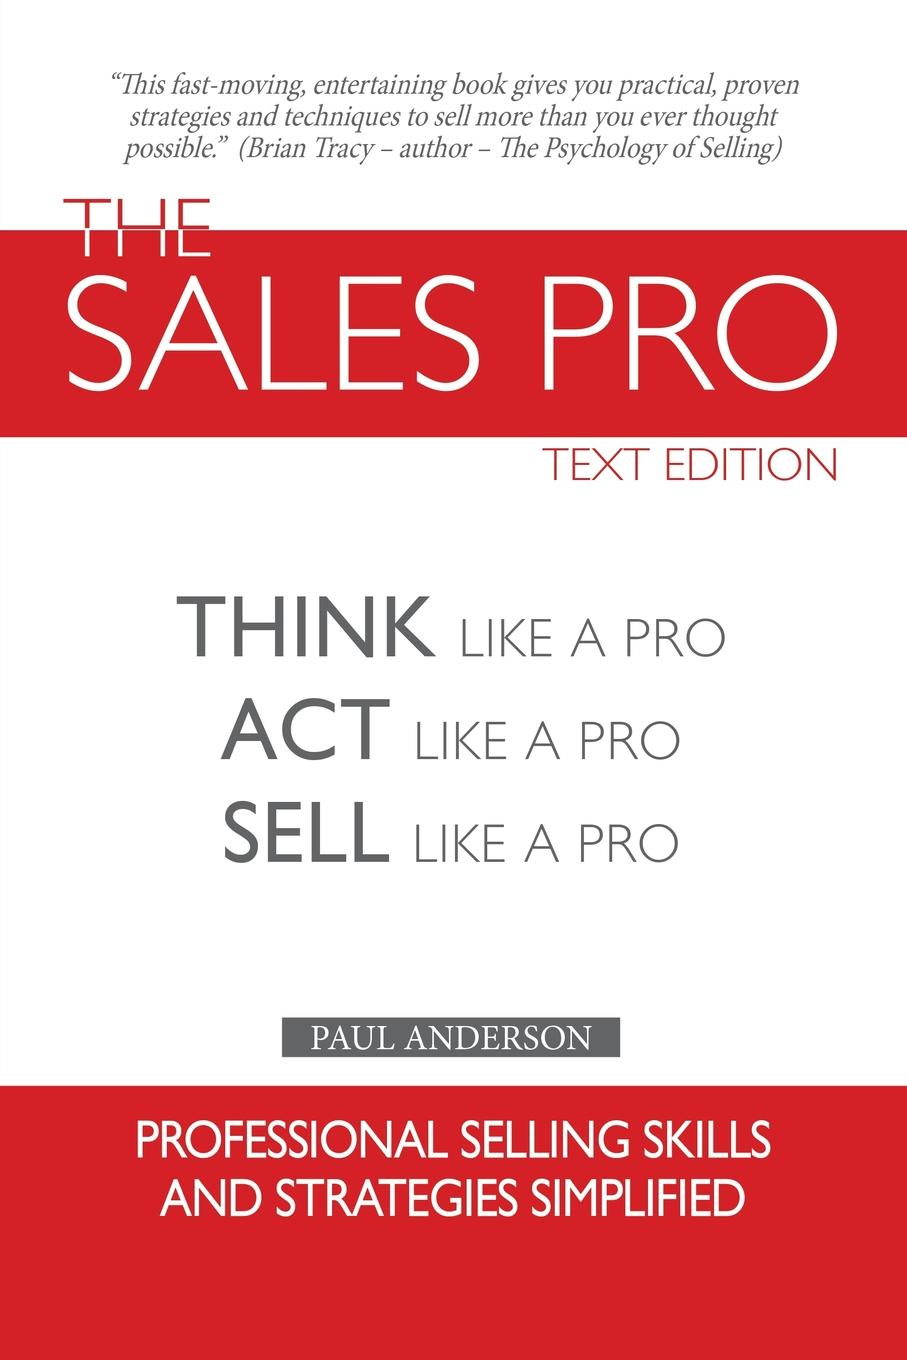 Paul Anderson The Sales Pro. Think Like A Pro, Act Like A Pro, Sell Like A Pro jerry acuff stop acting like a seller and start thinking like a buyer improve sales effectiveness by helping customers buy